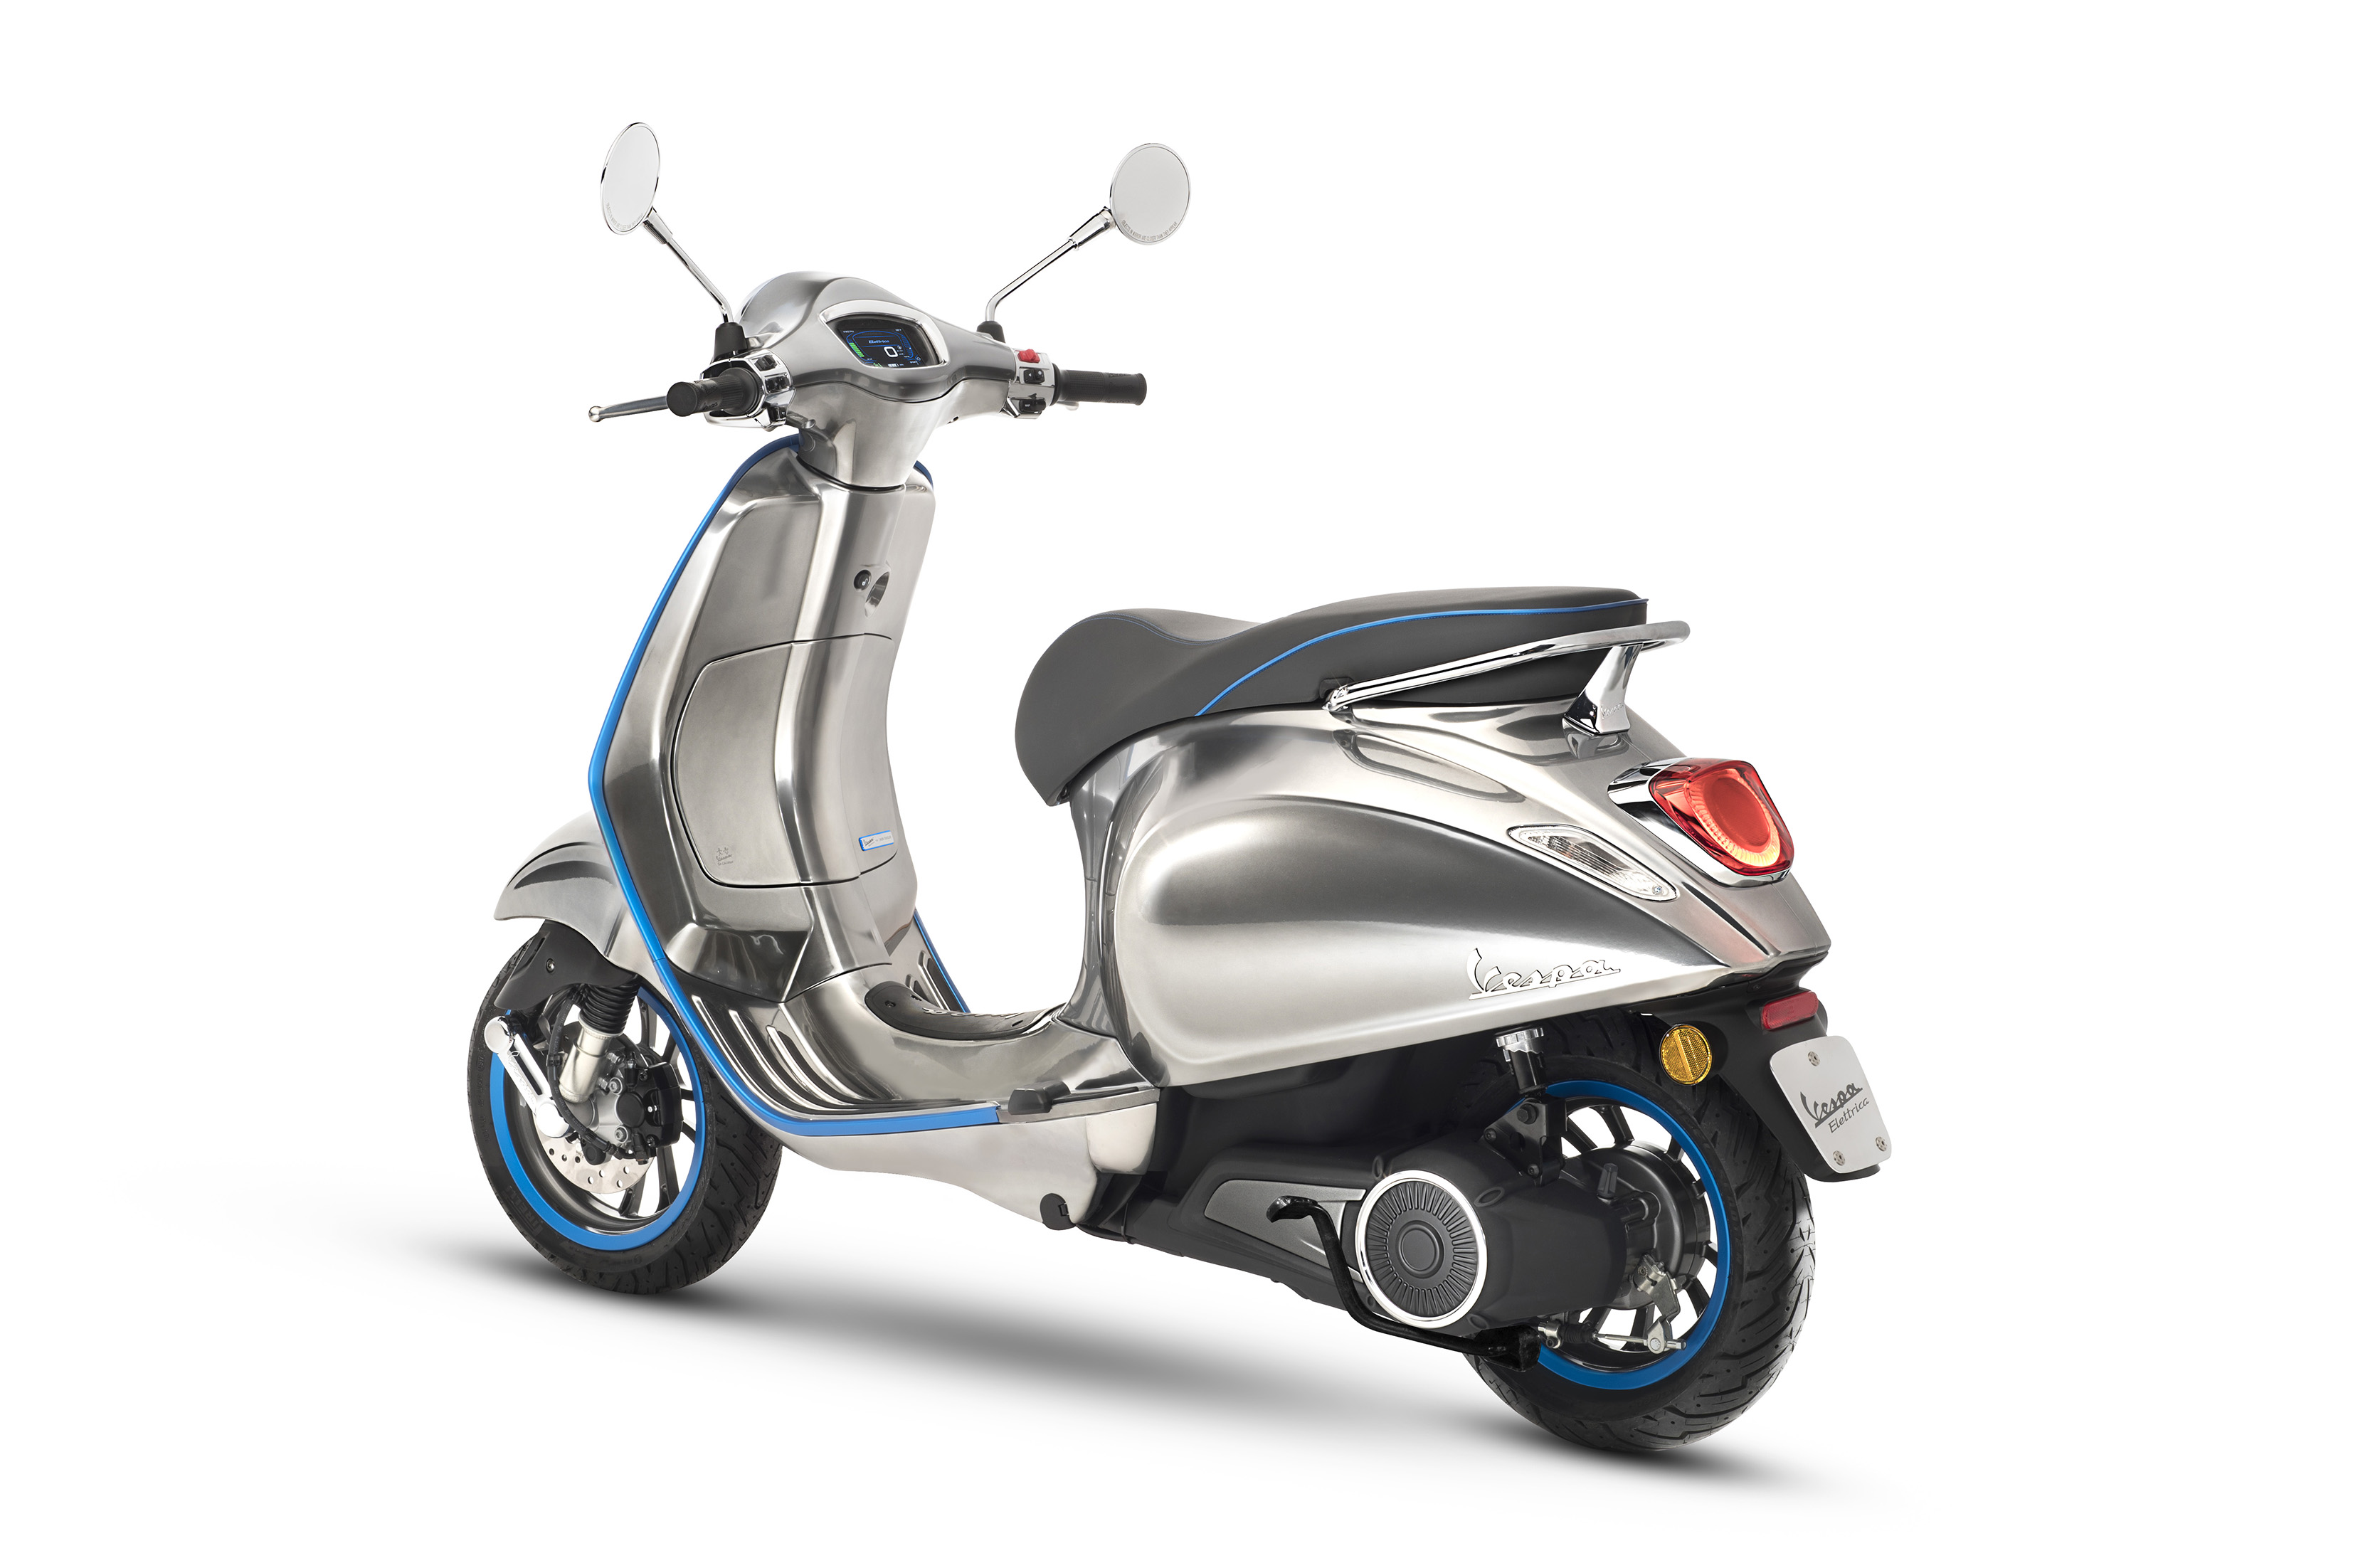 Vespa's first electric scooter is coming in 2018 with 62